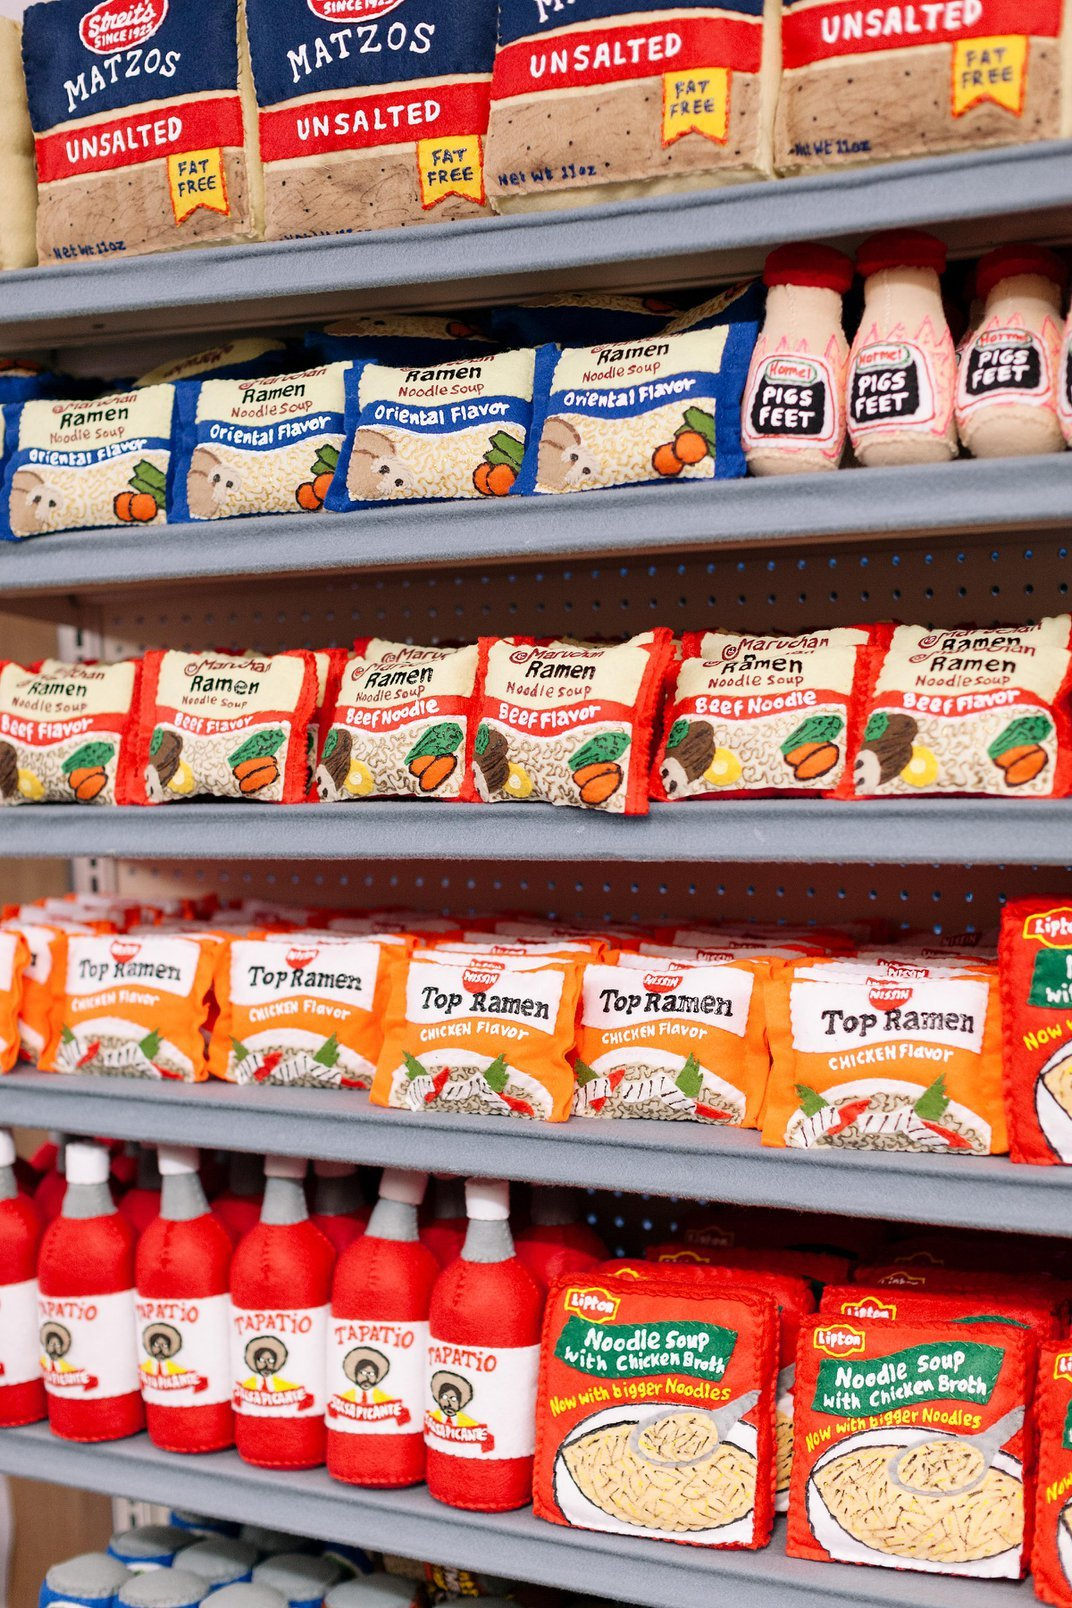 This Los Angeles Grocery Store Has 31,000 Items — and You Can't Eat Any of Them